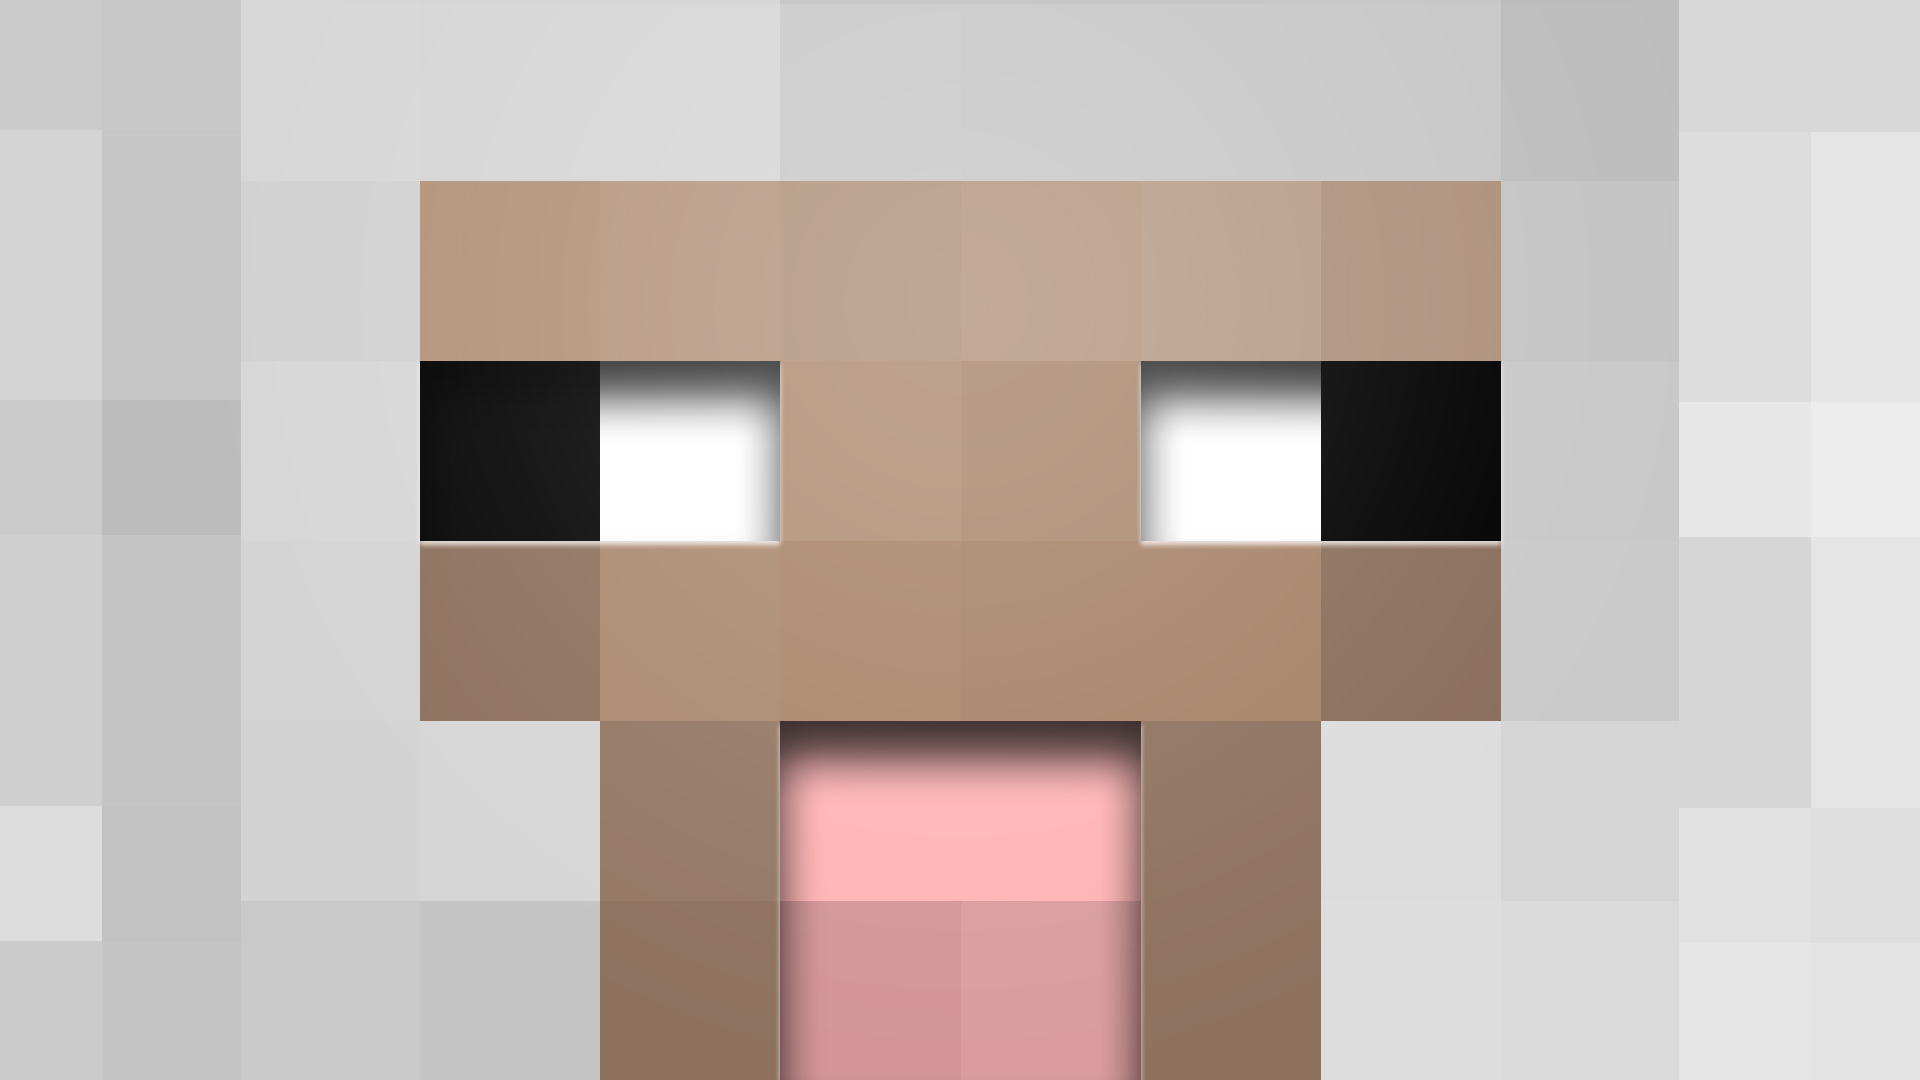 minegraft how to get sheep